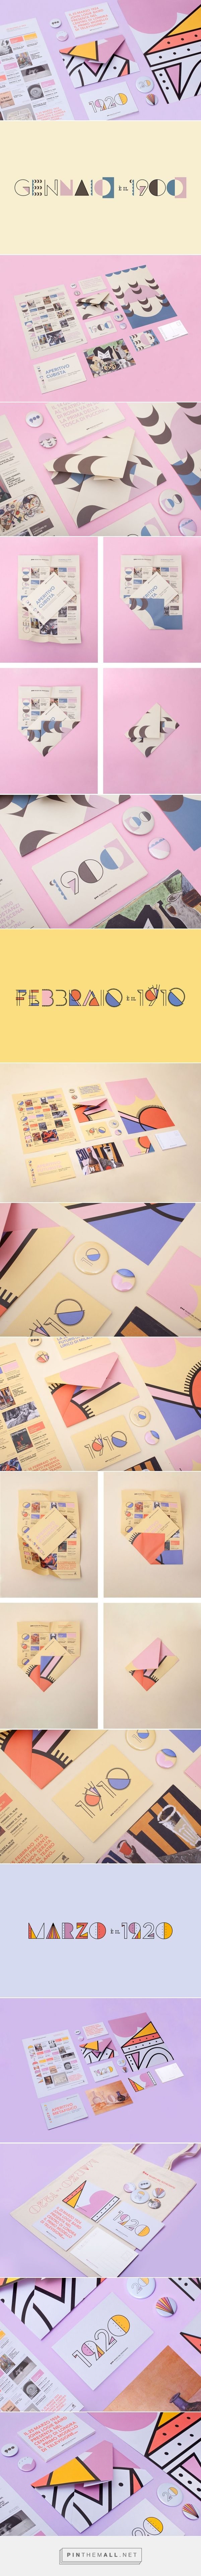 Museo del 900 Yearly Programme Branding by Alice Donadoni | Fivestar Branding Agency – Design and Branding Agency & Inspiration Gallery